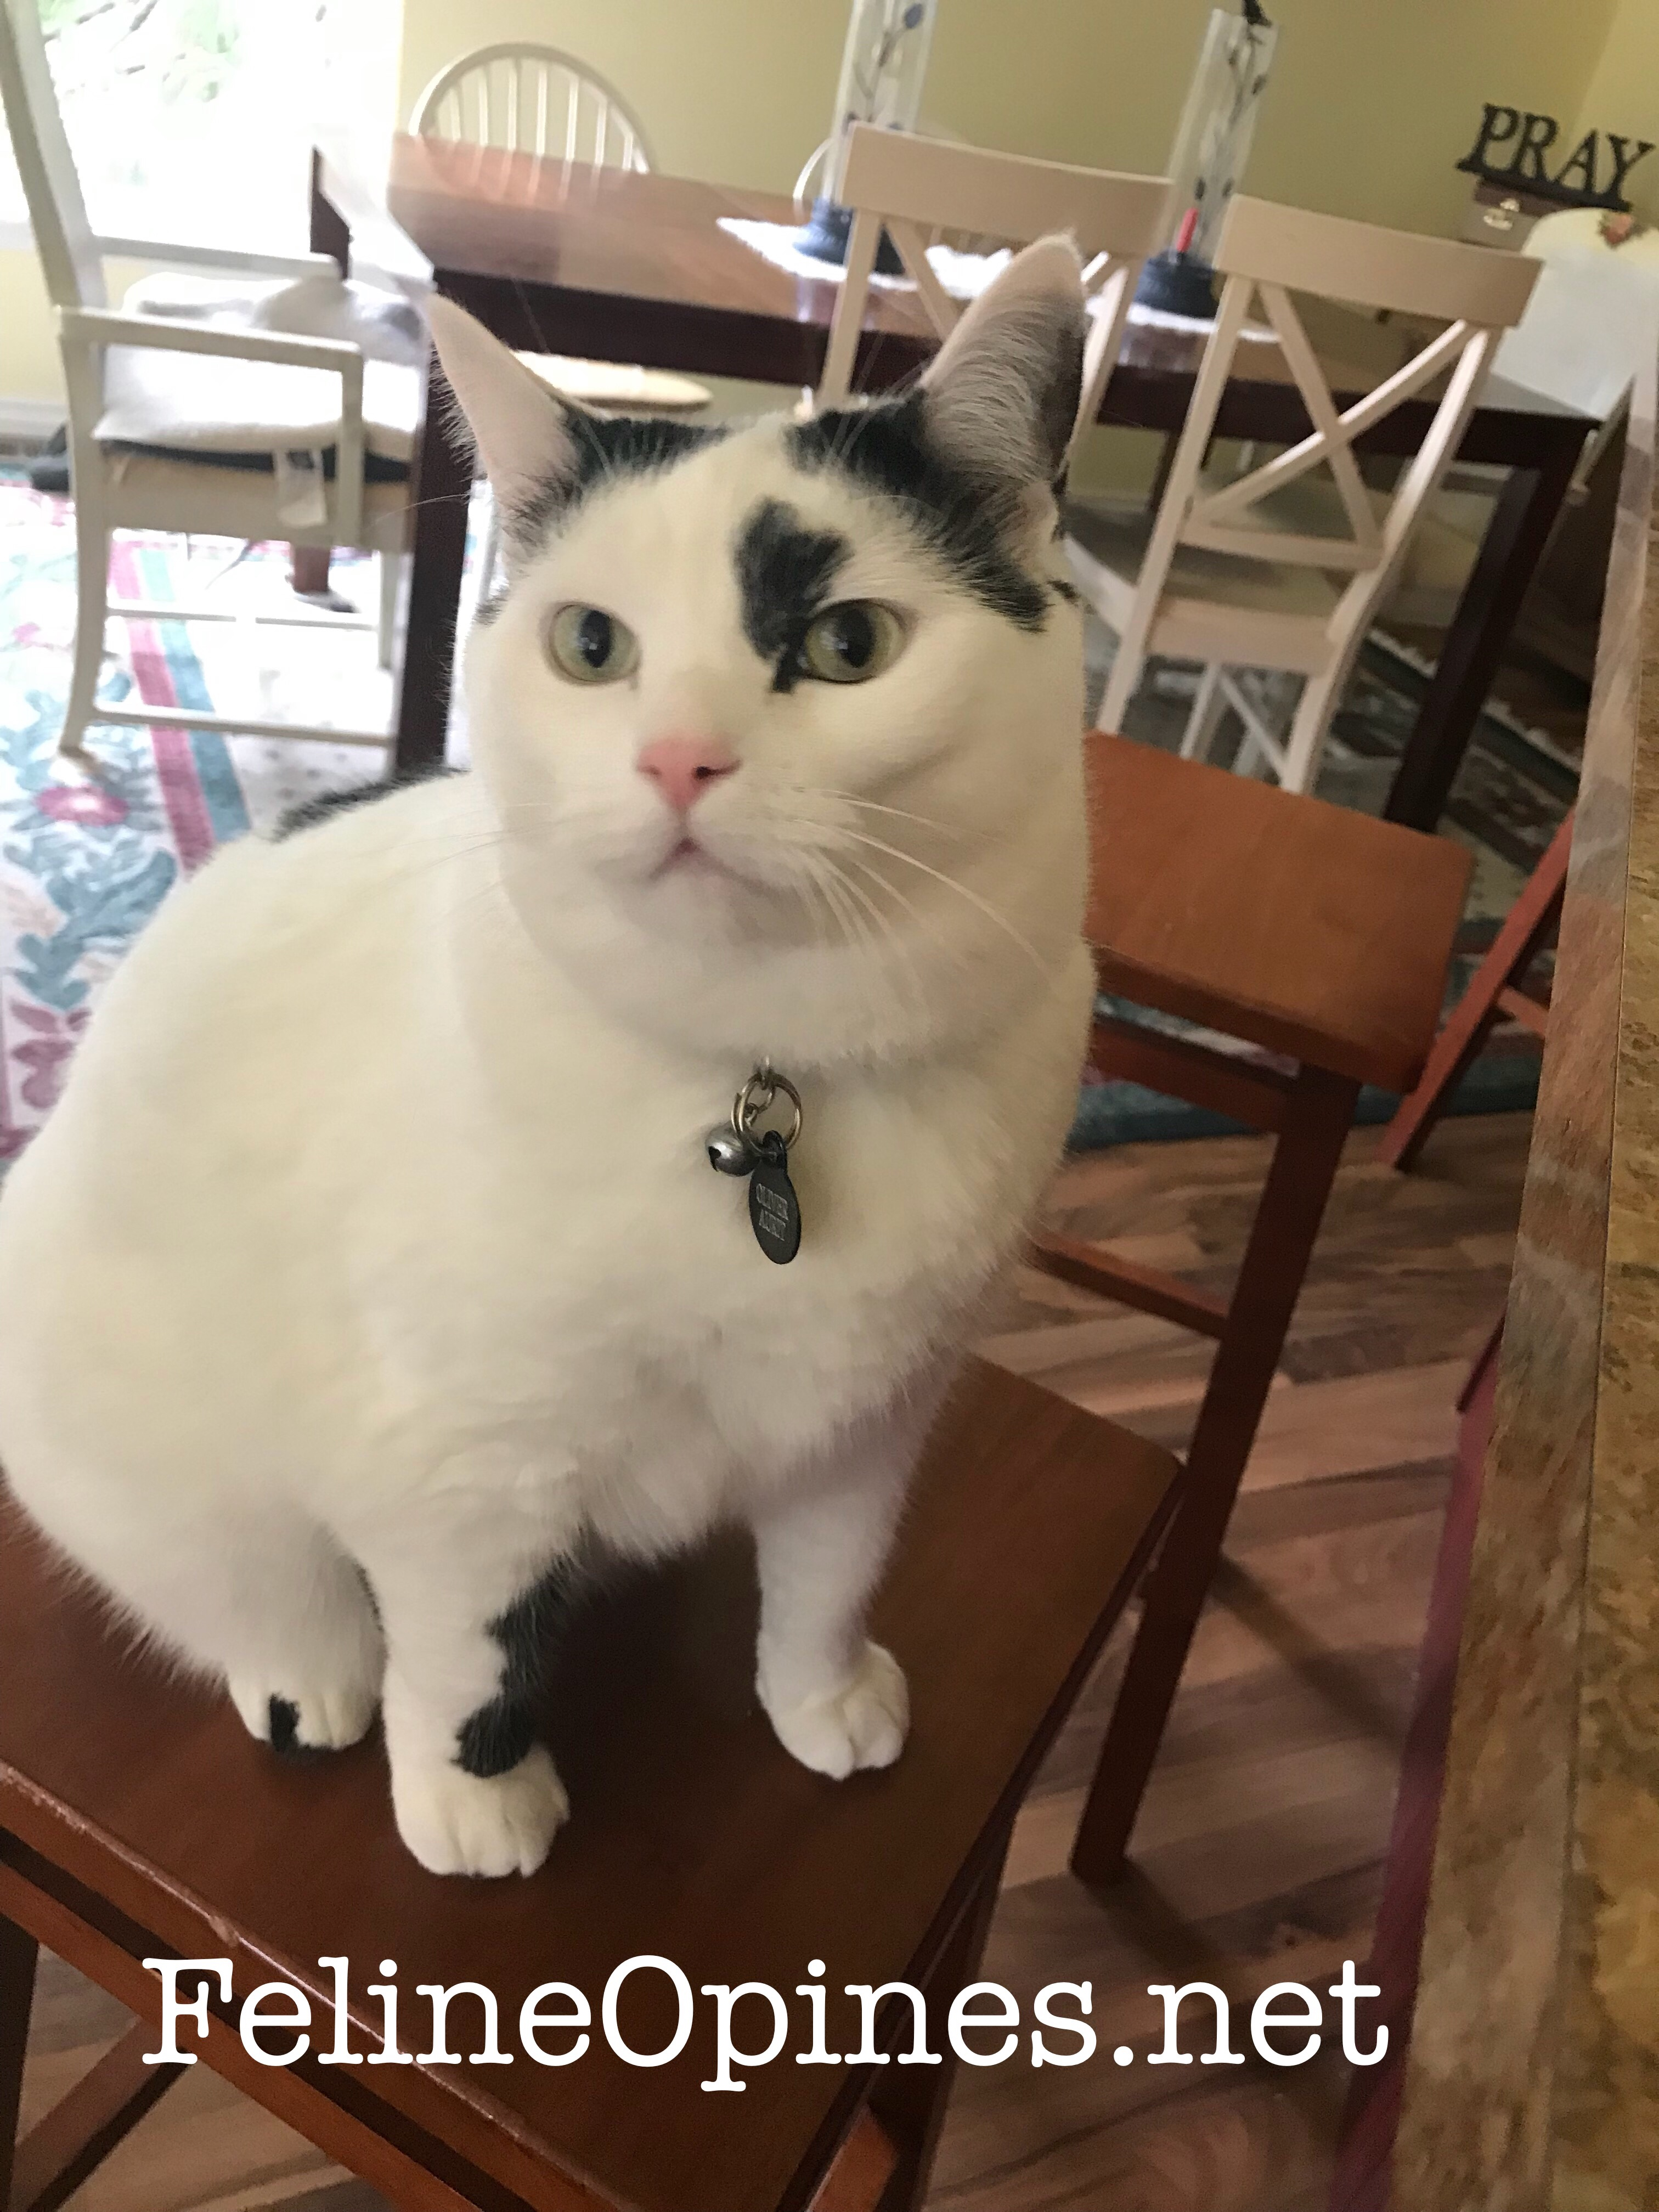 Black and white cat sits on stool waiting for dinner